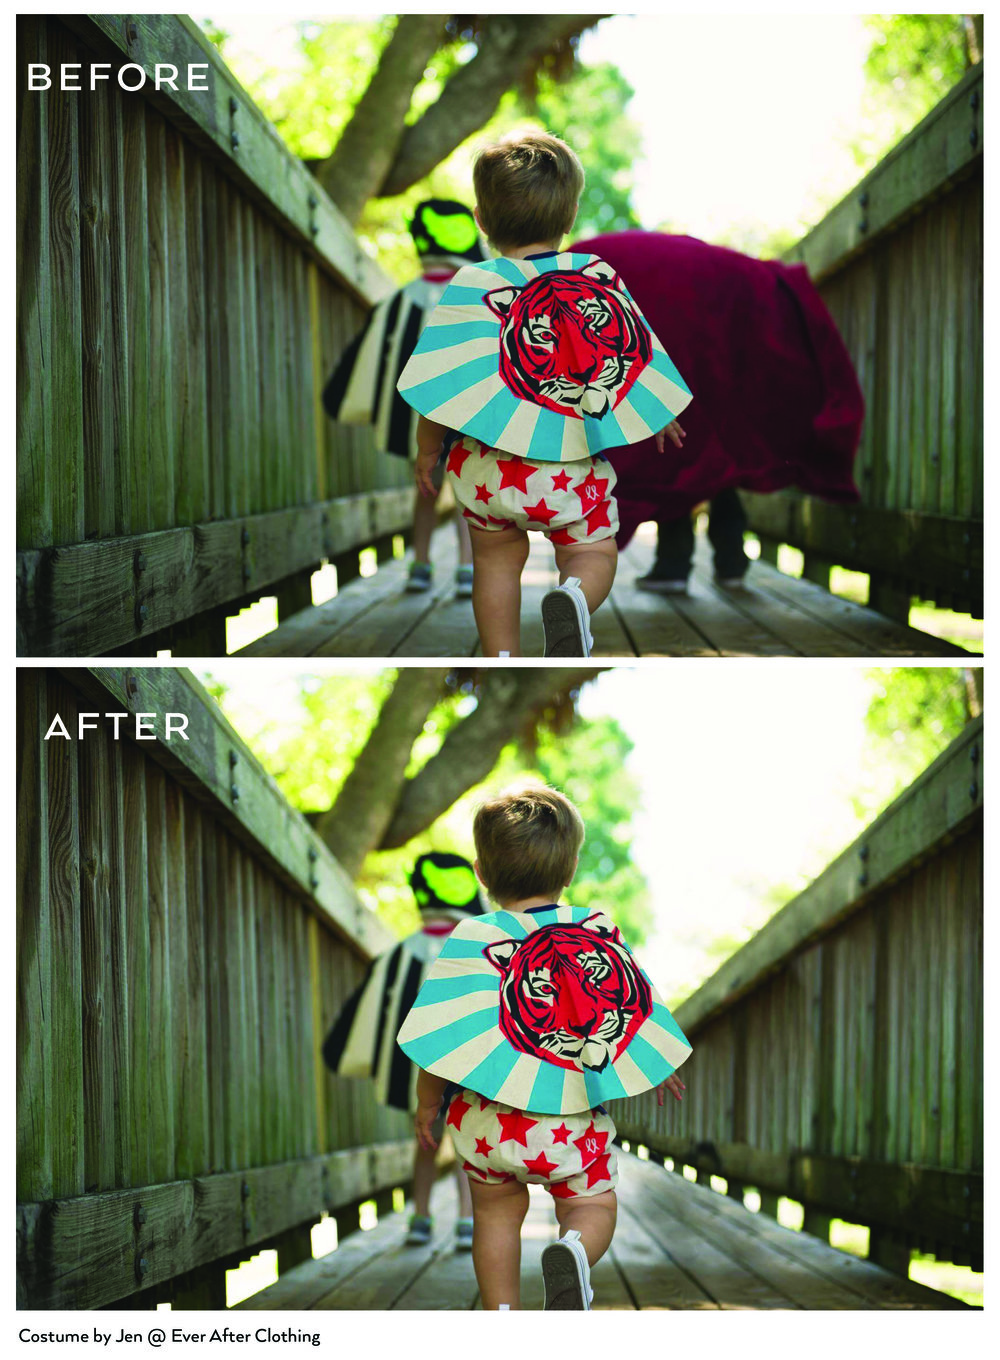 Child-before-after copy.jpg